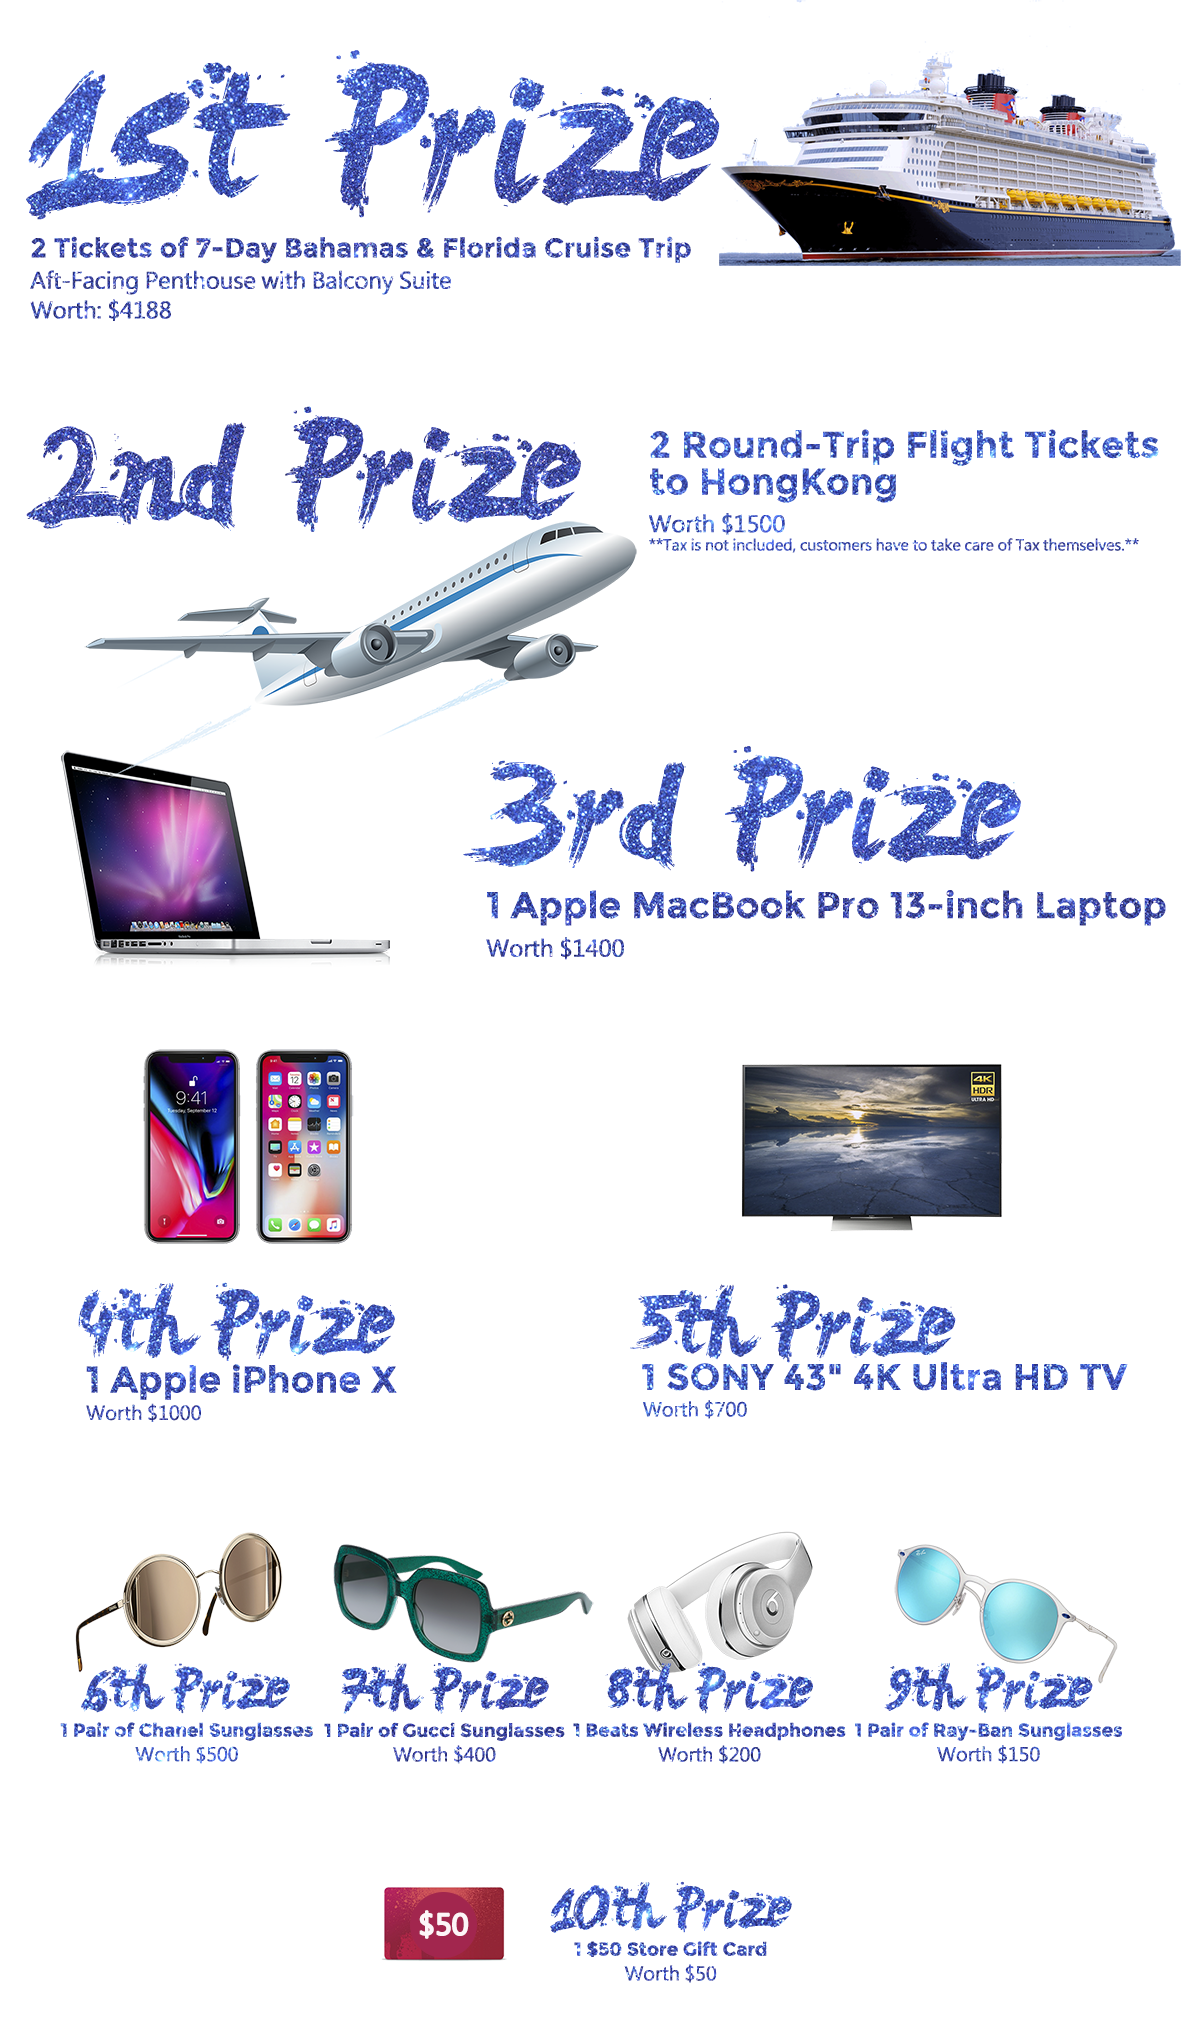 detailed raffle drawing dates locations